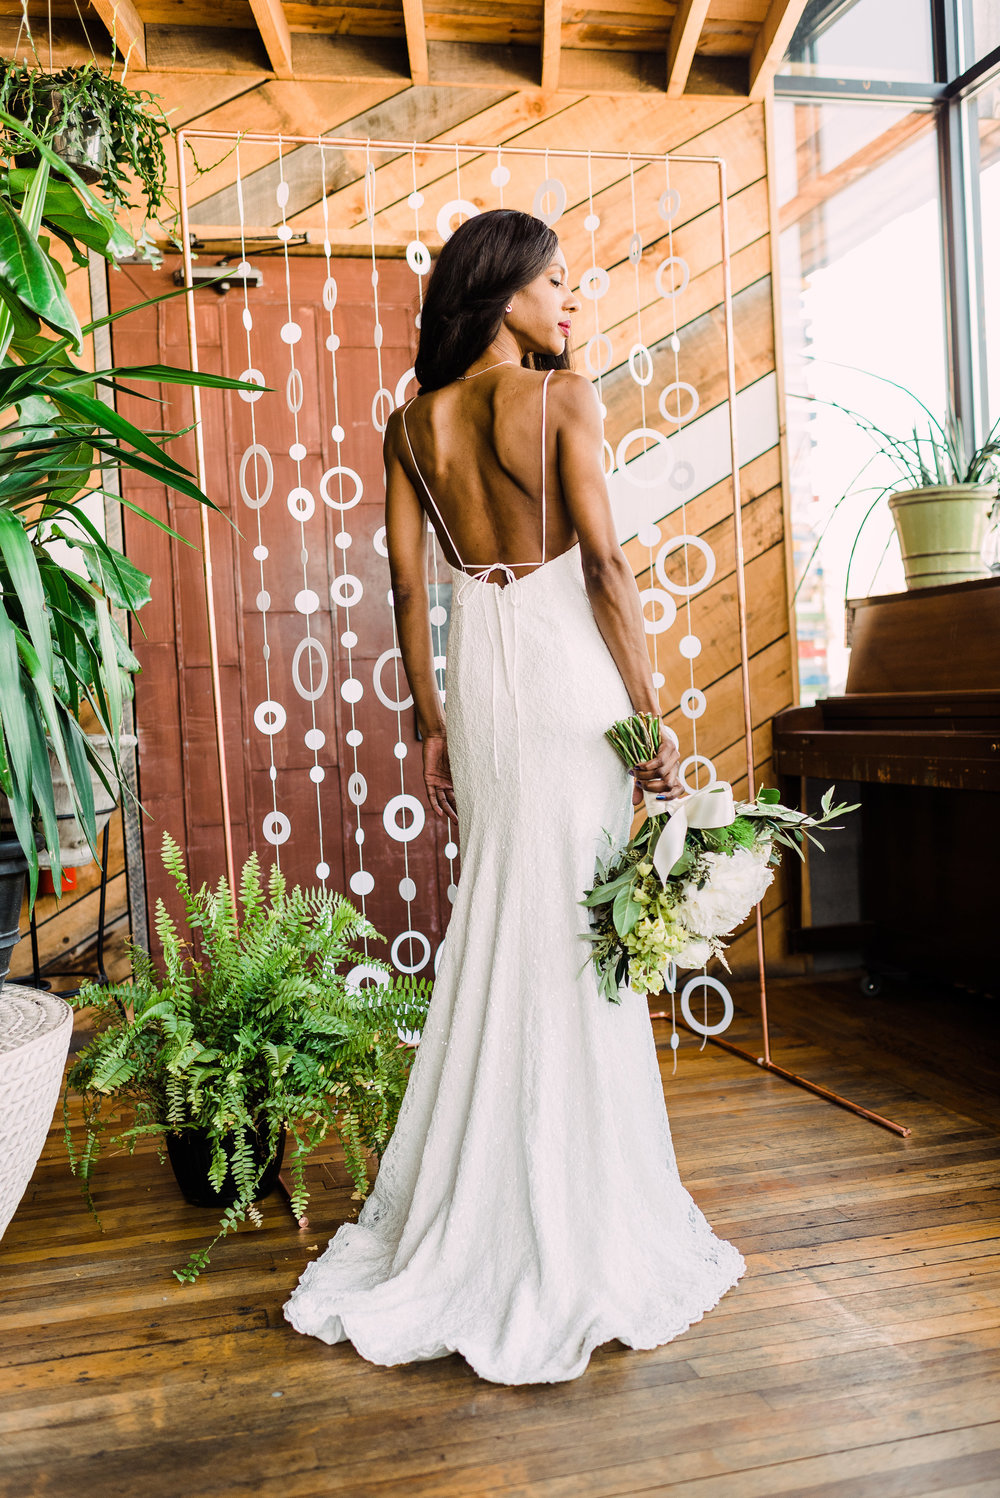 "Shanda's measurements are: Bust 34"" / Waist 25"" / Hip 36"" 